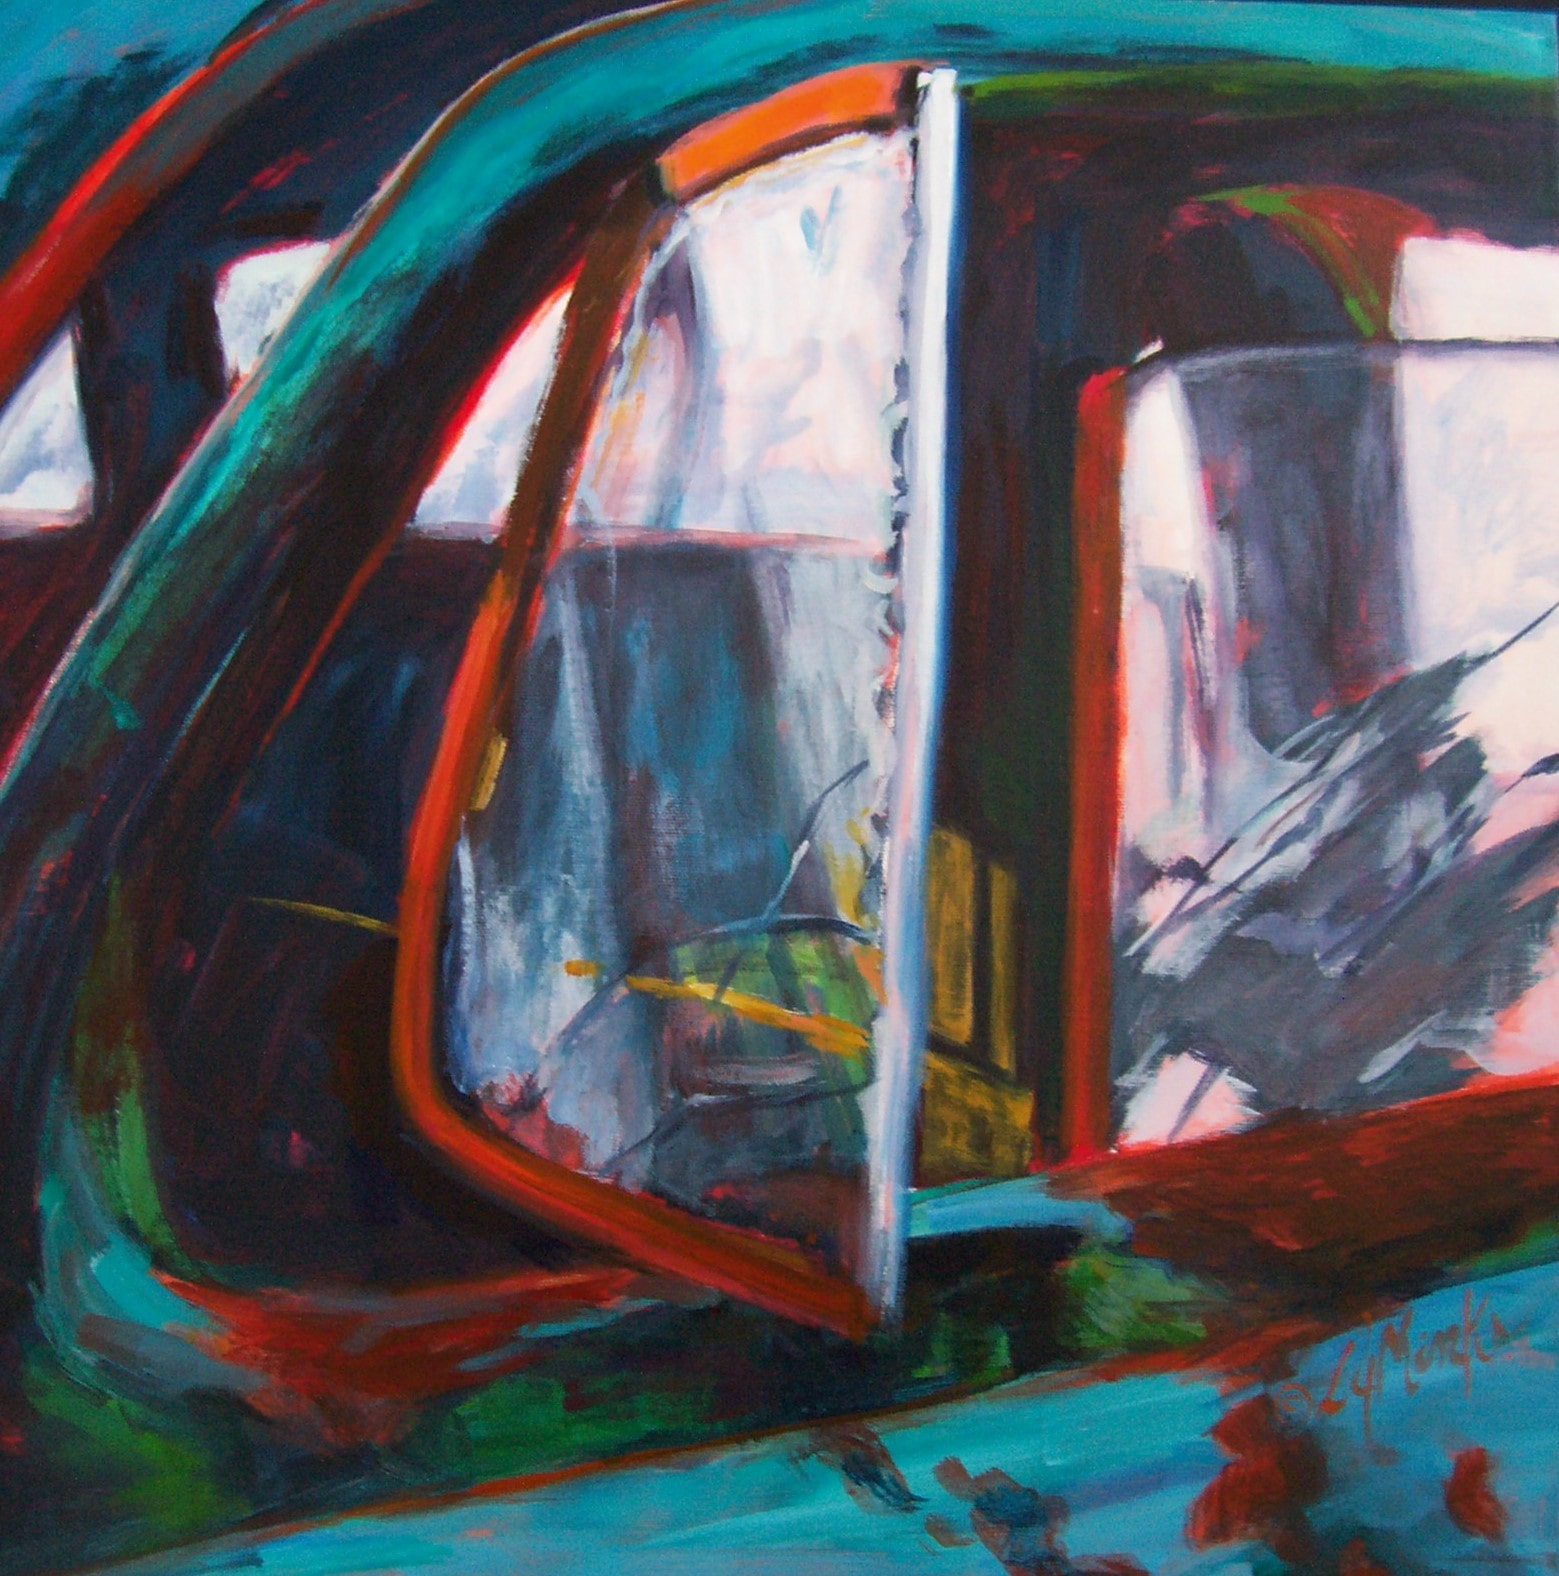 A painting of an open window in an old fashioned truck